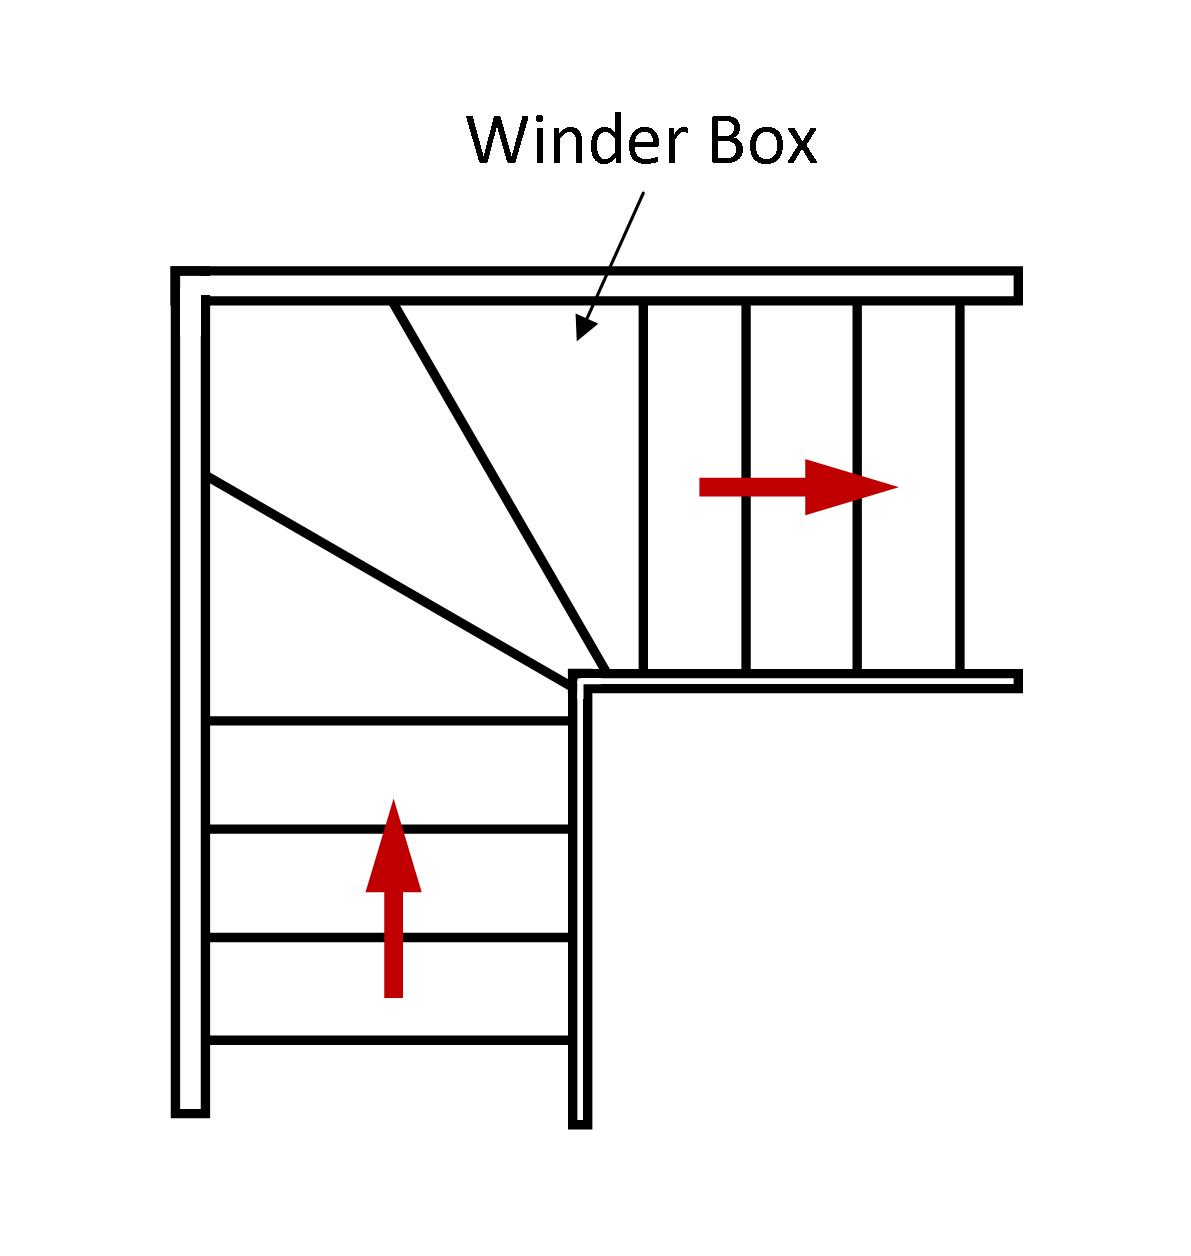 hight resolution of winder staircase building regulations for stairs staircase winderbox winder box